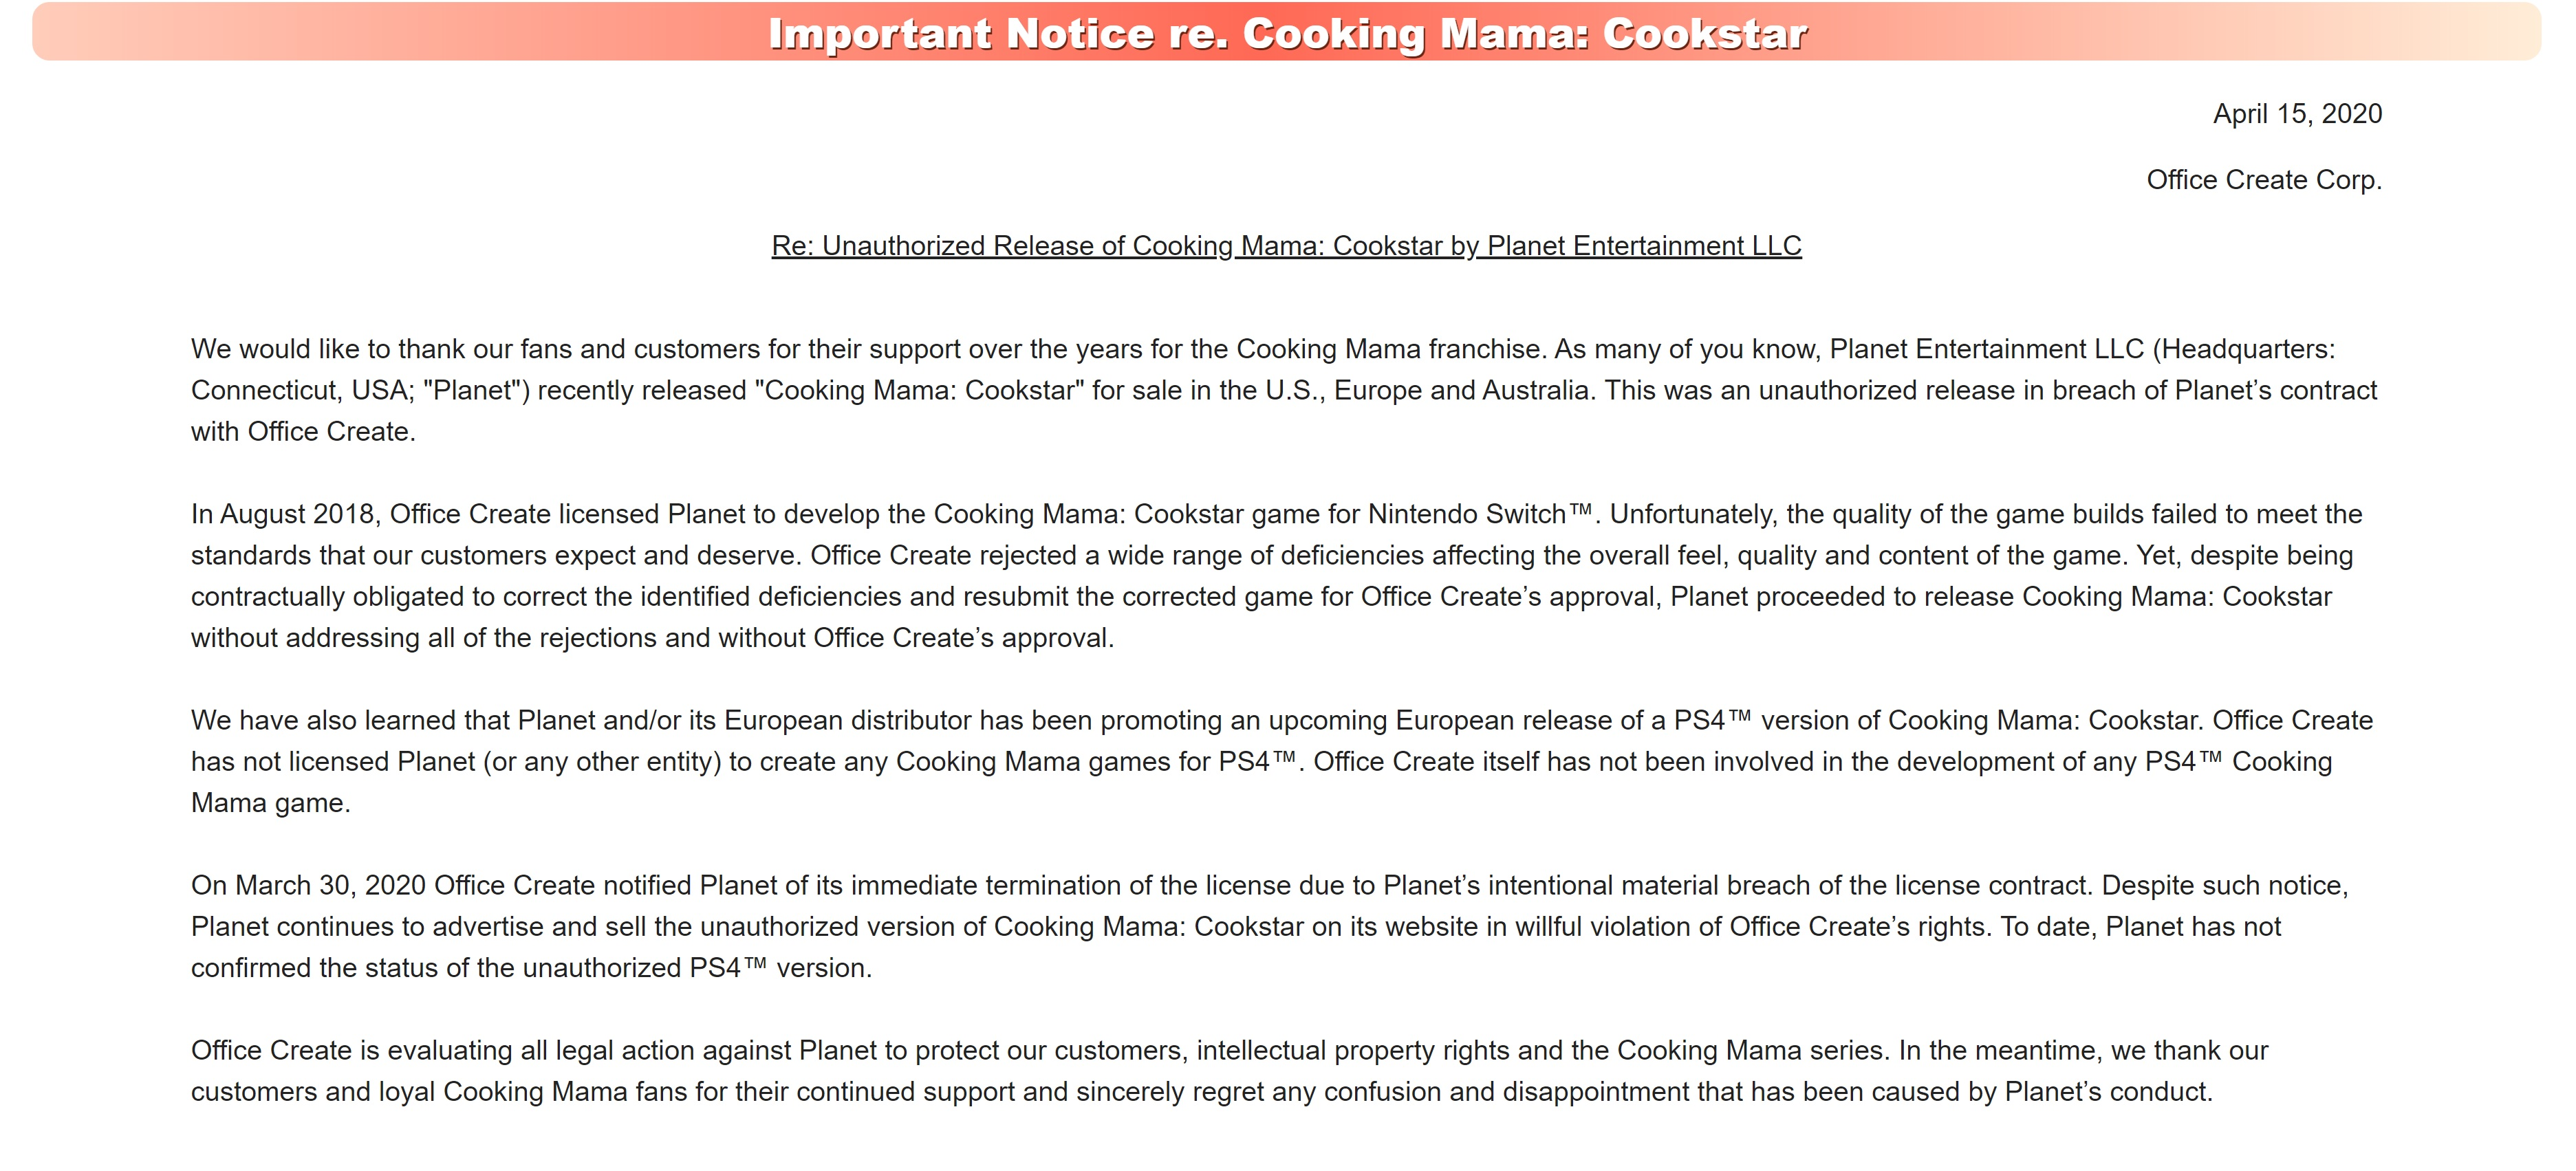 Cooking Mama Press Release